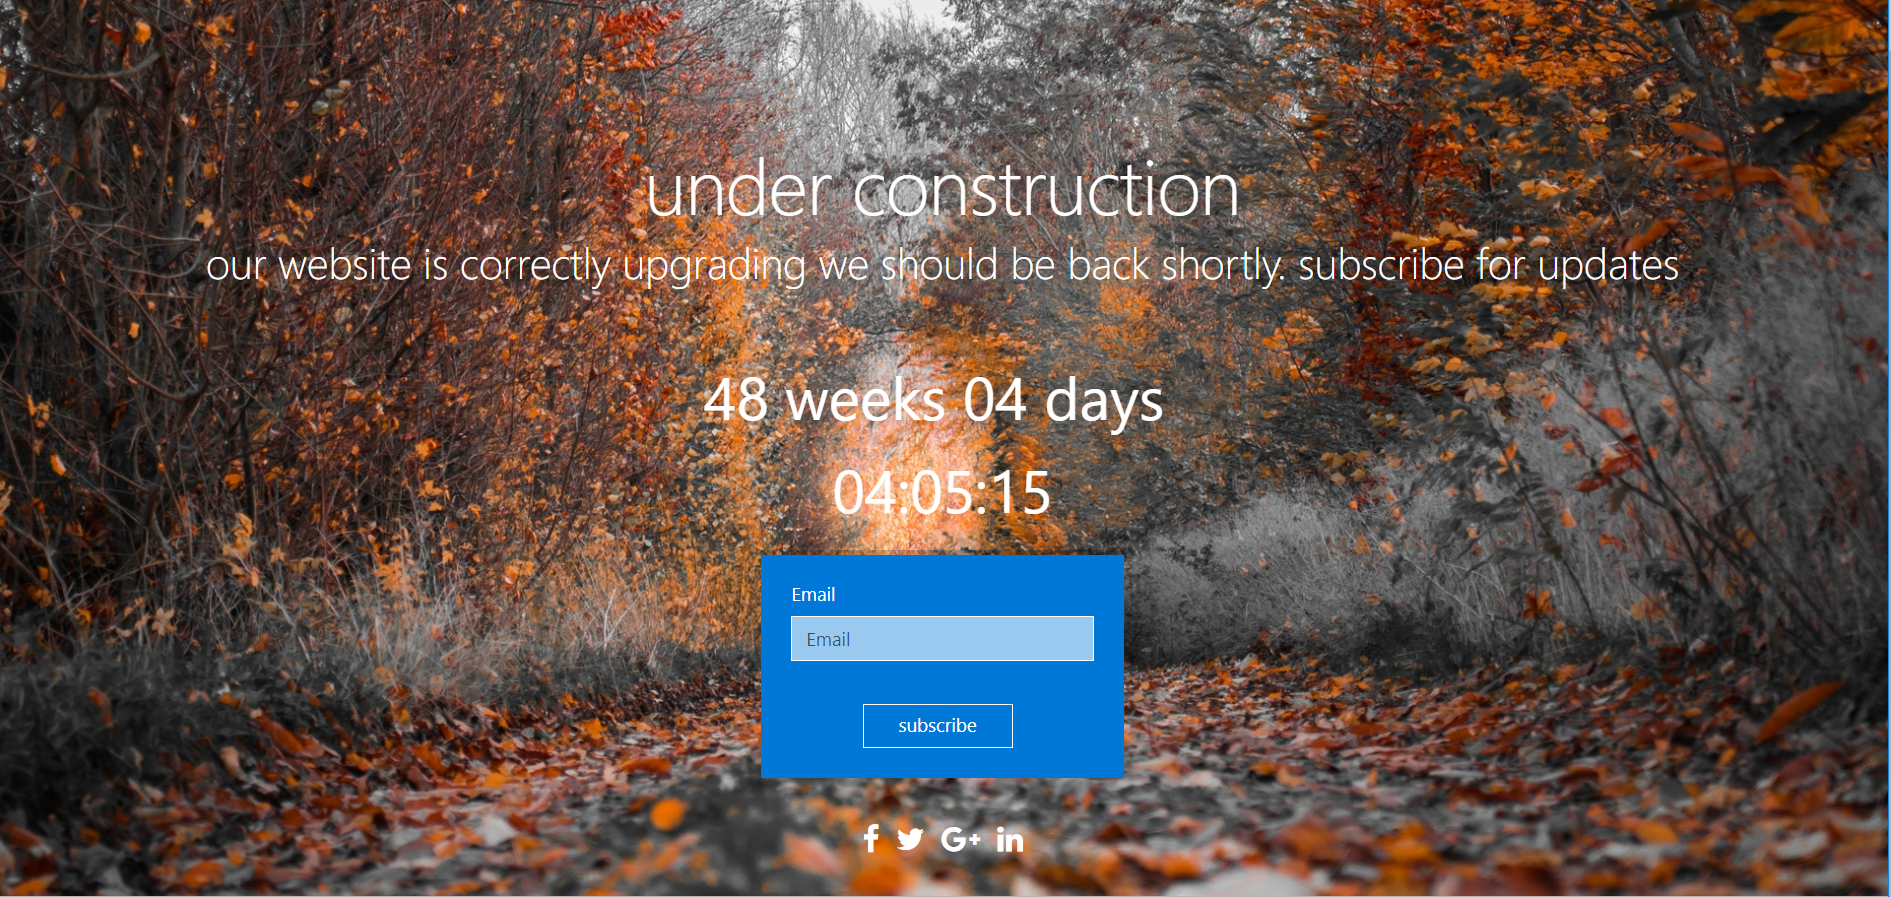 Create Coming Soon Page Or Under Construction In 2 Hours